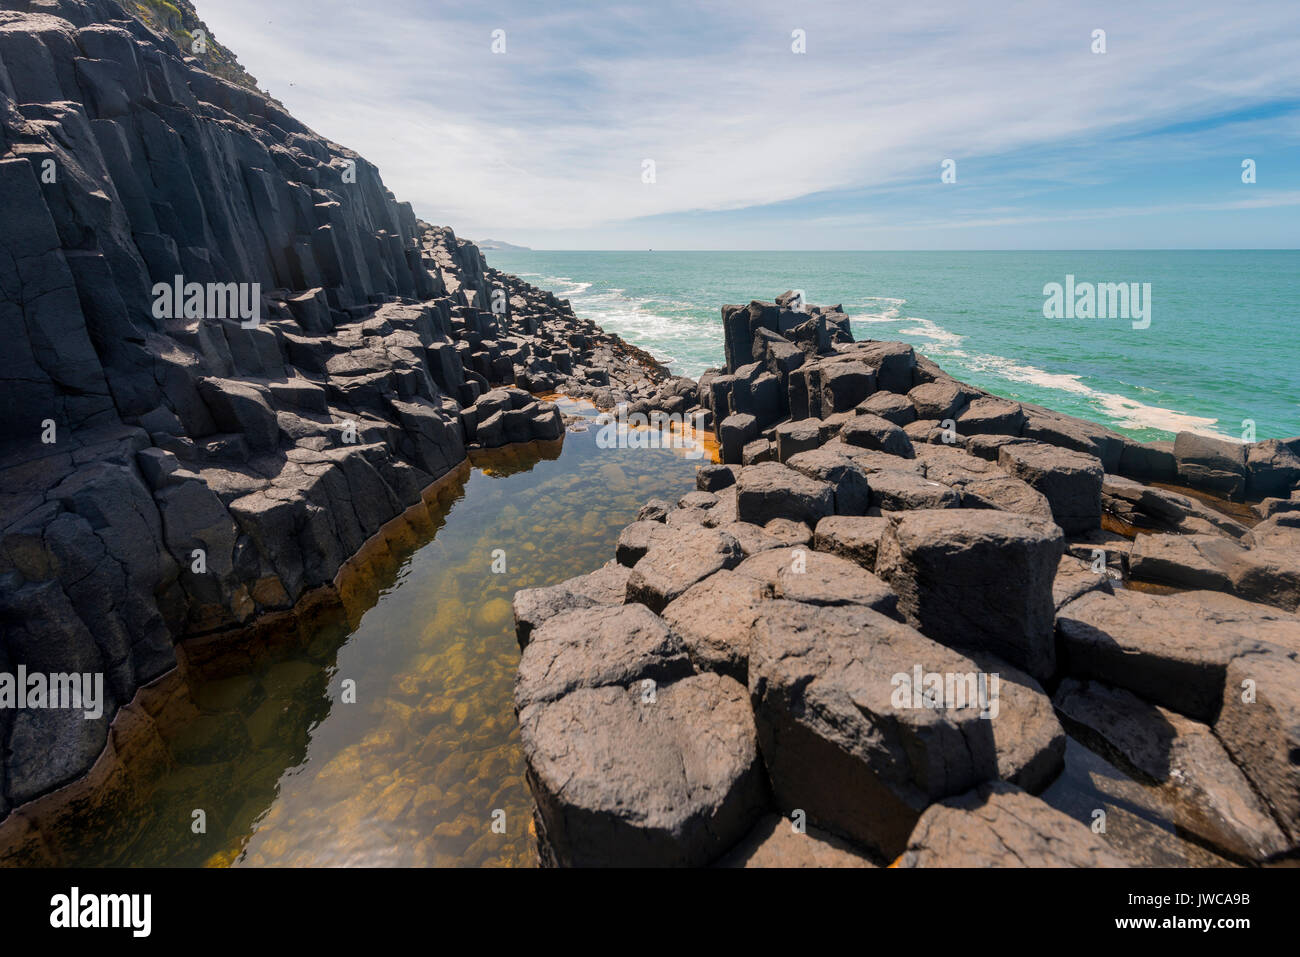 Water gathering between rocks, Roman Bath, Hexagonal basalt column by the Sea, Blackhead, Dunedin, Otago, South Island - Stock Image